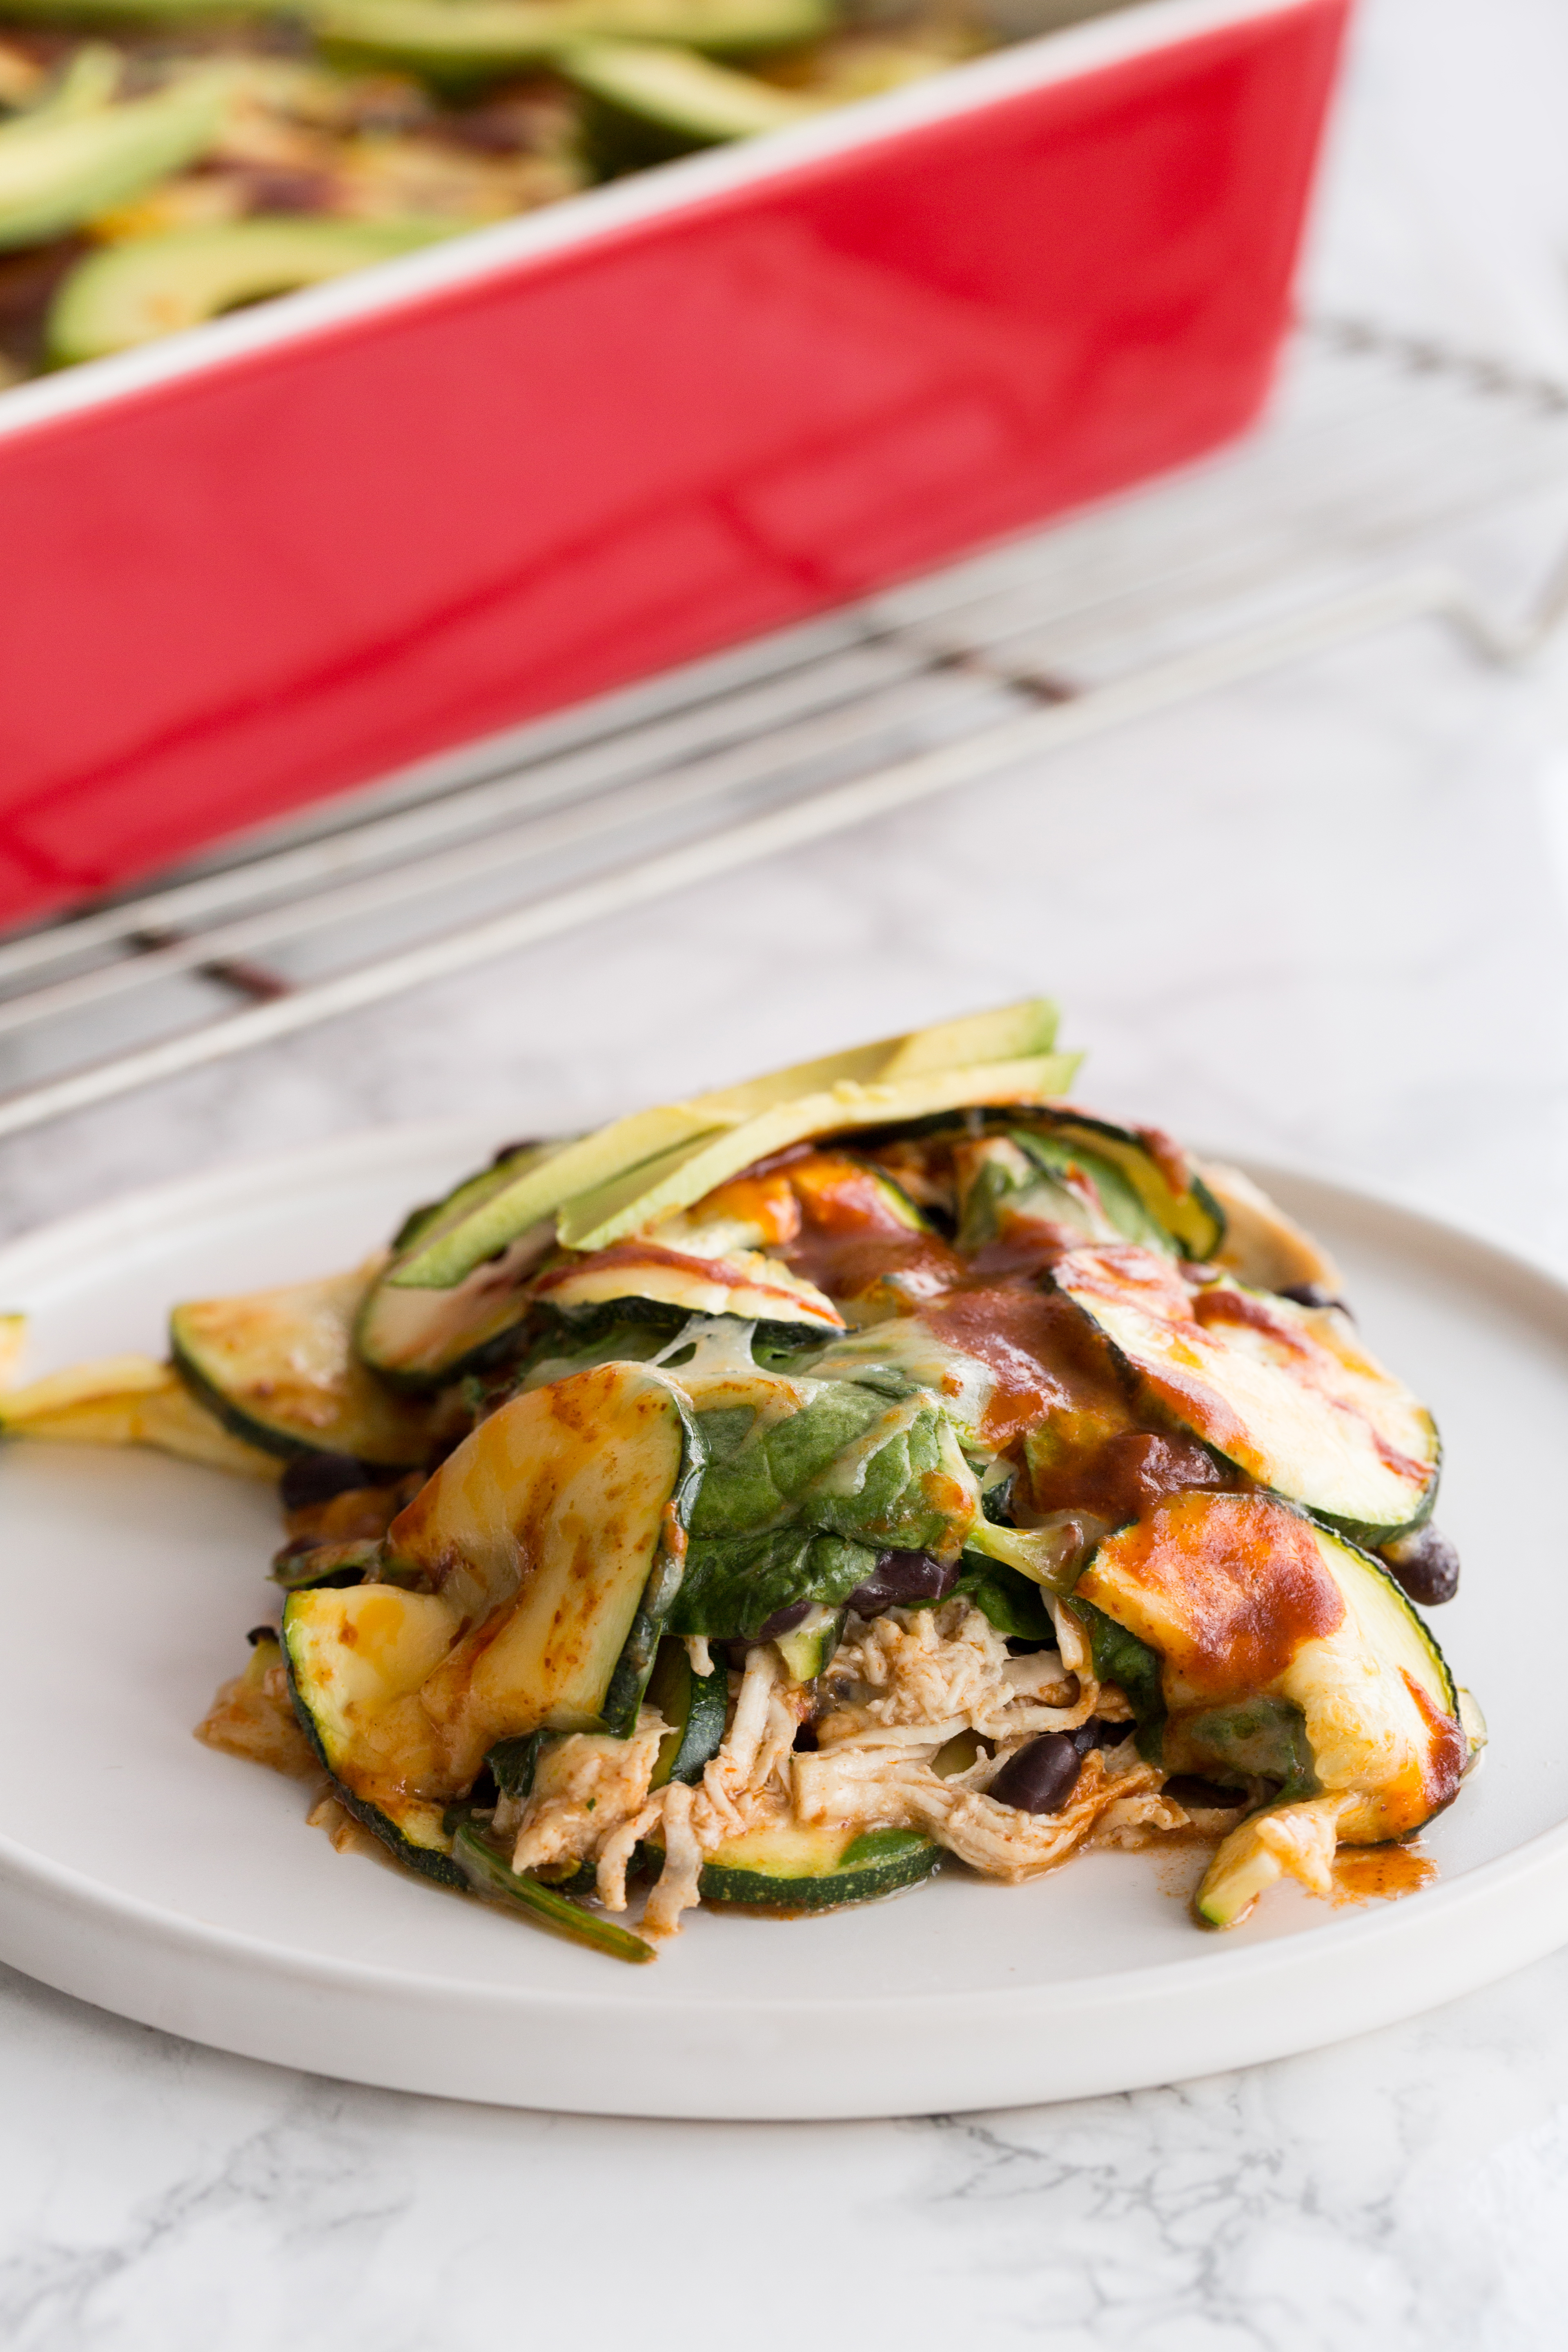 Zucchini and Chicken Enchilada Casserole